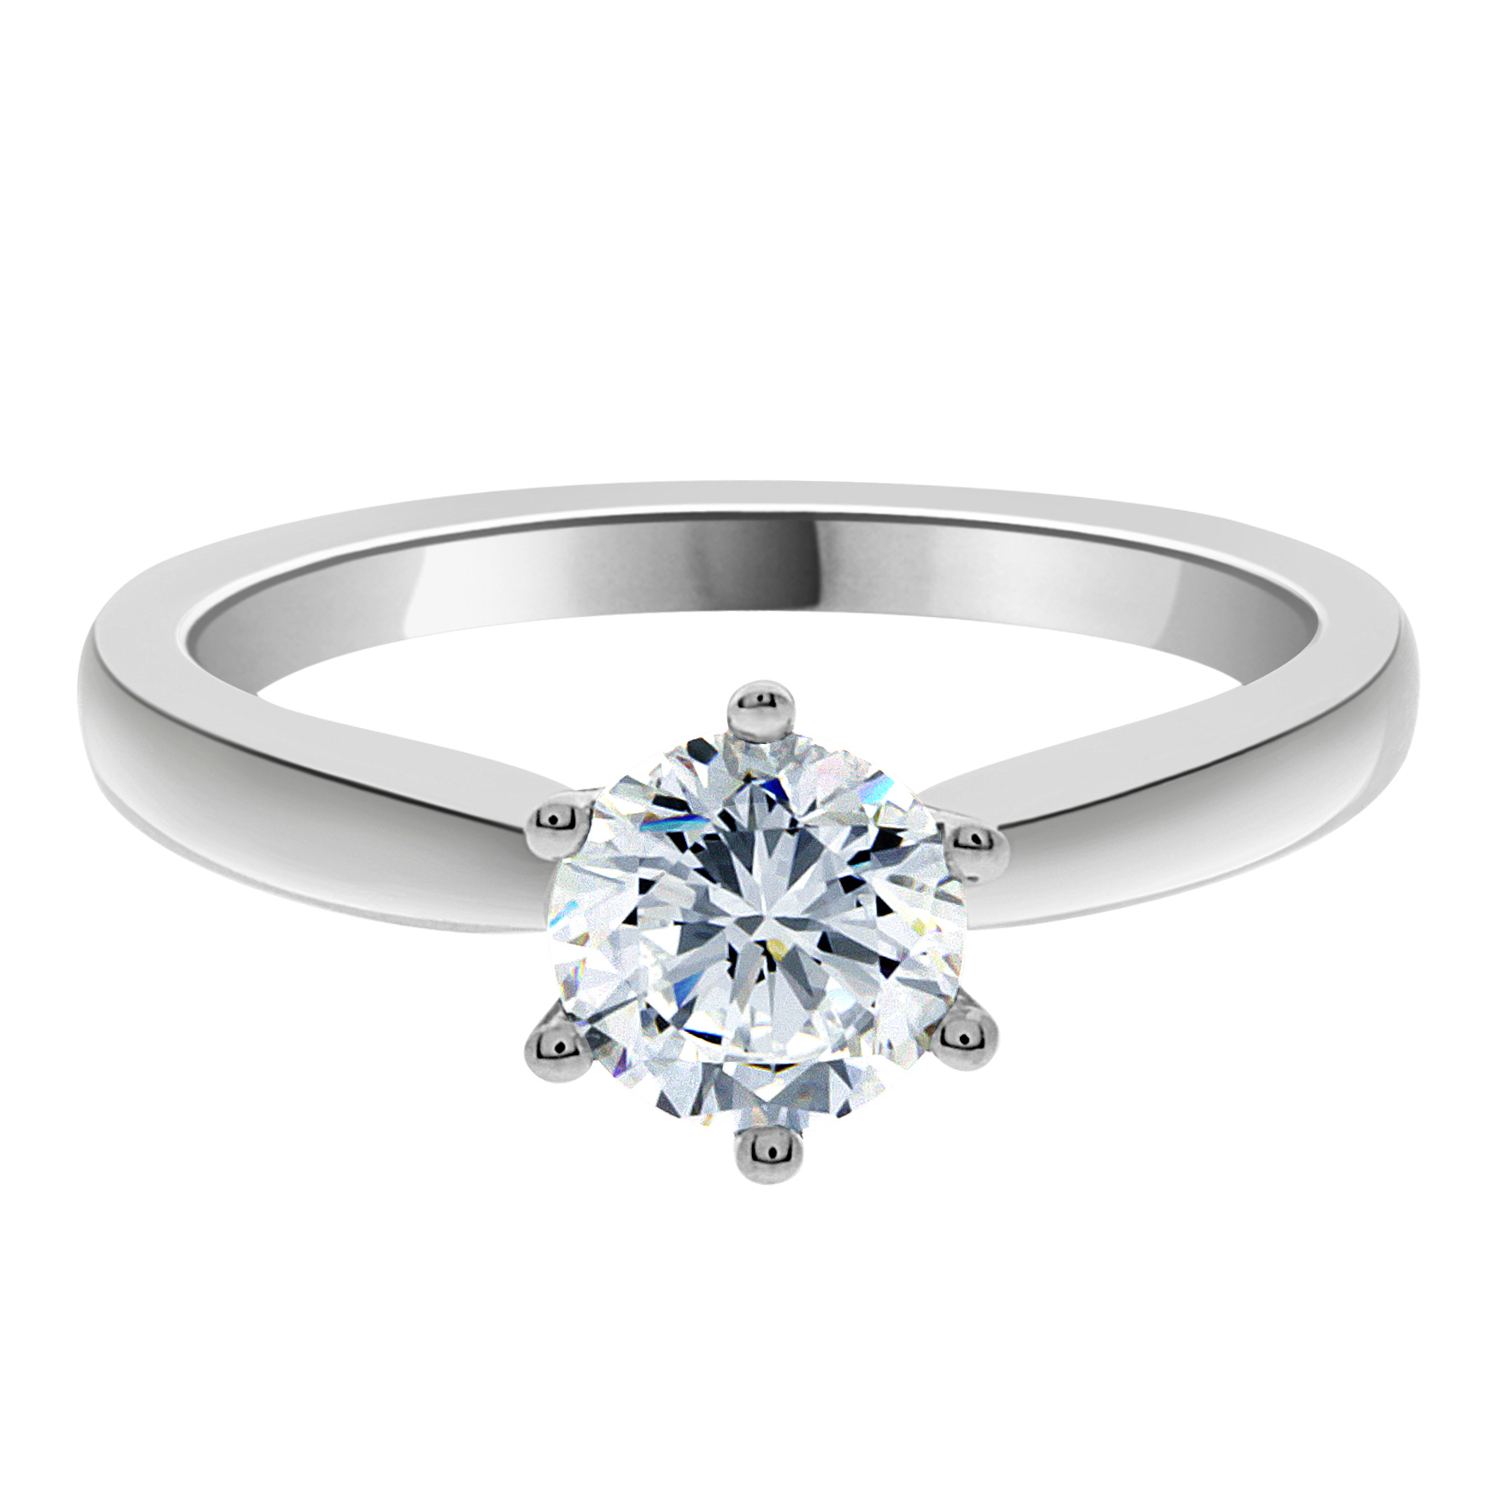 solitaire diamond zirconia free rings orders metal jewelry overstock cubic set on watches nexte product over ring shipping tension